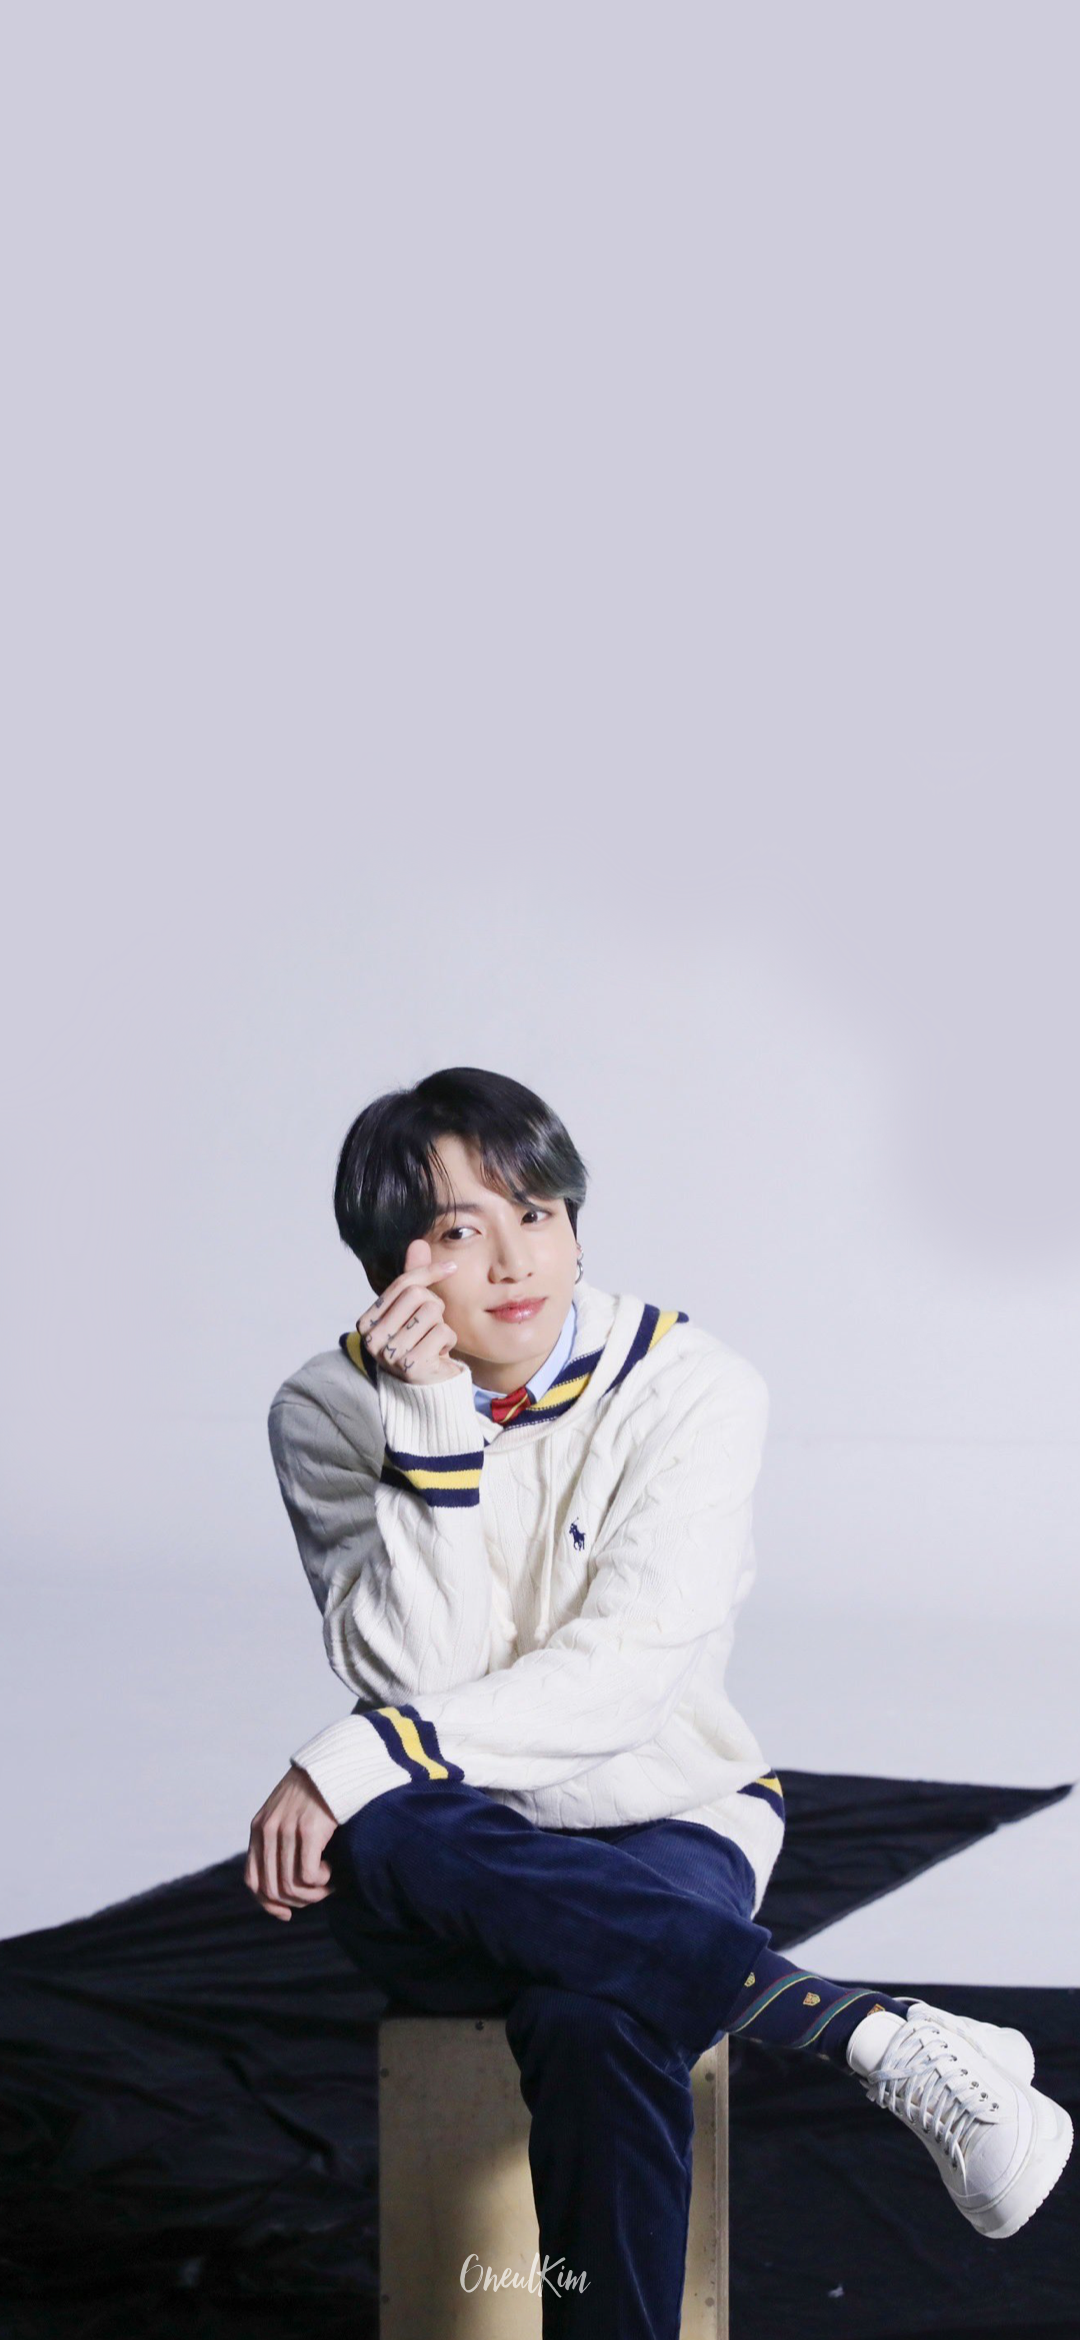 Pin By Galaxykita On Bts X Wallpaper In 2020 Jungkook Wallpaper